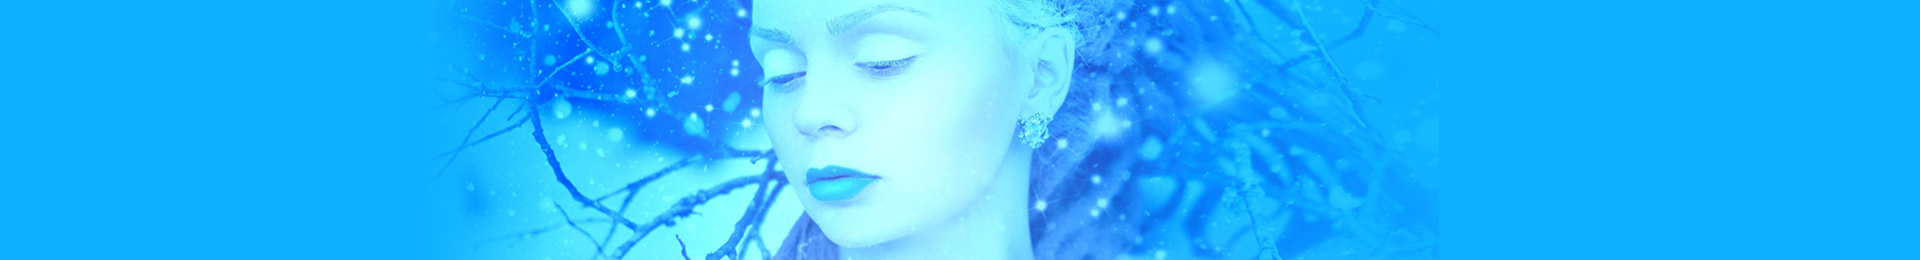 The Snow Queen banner image